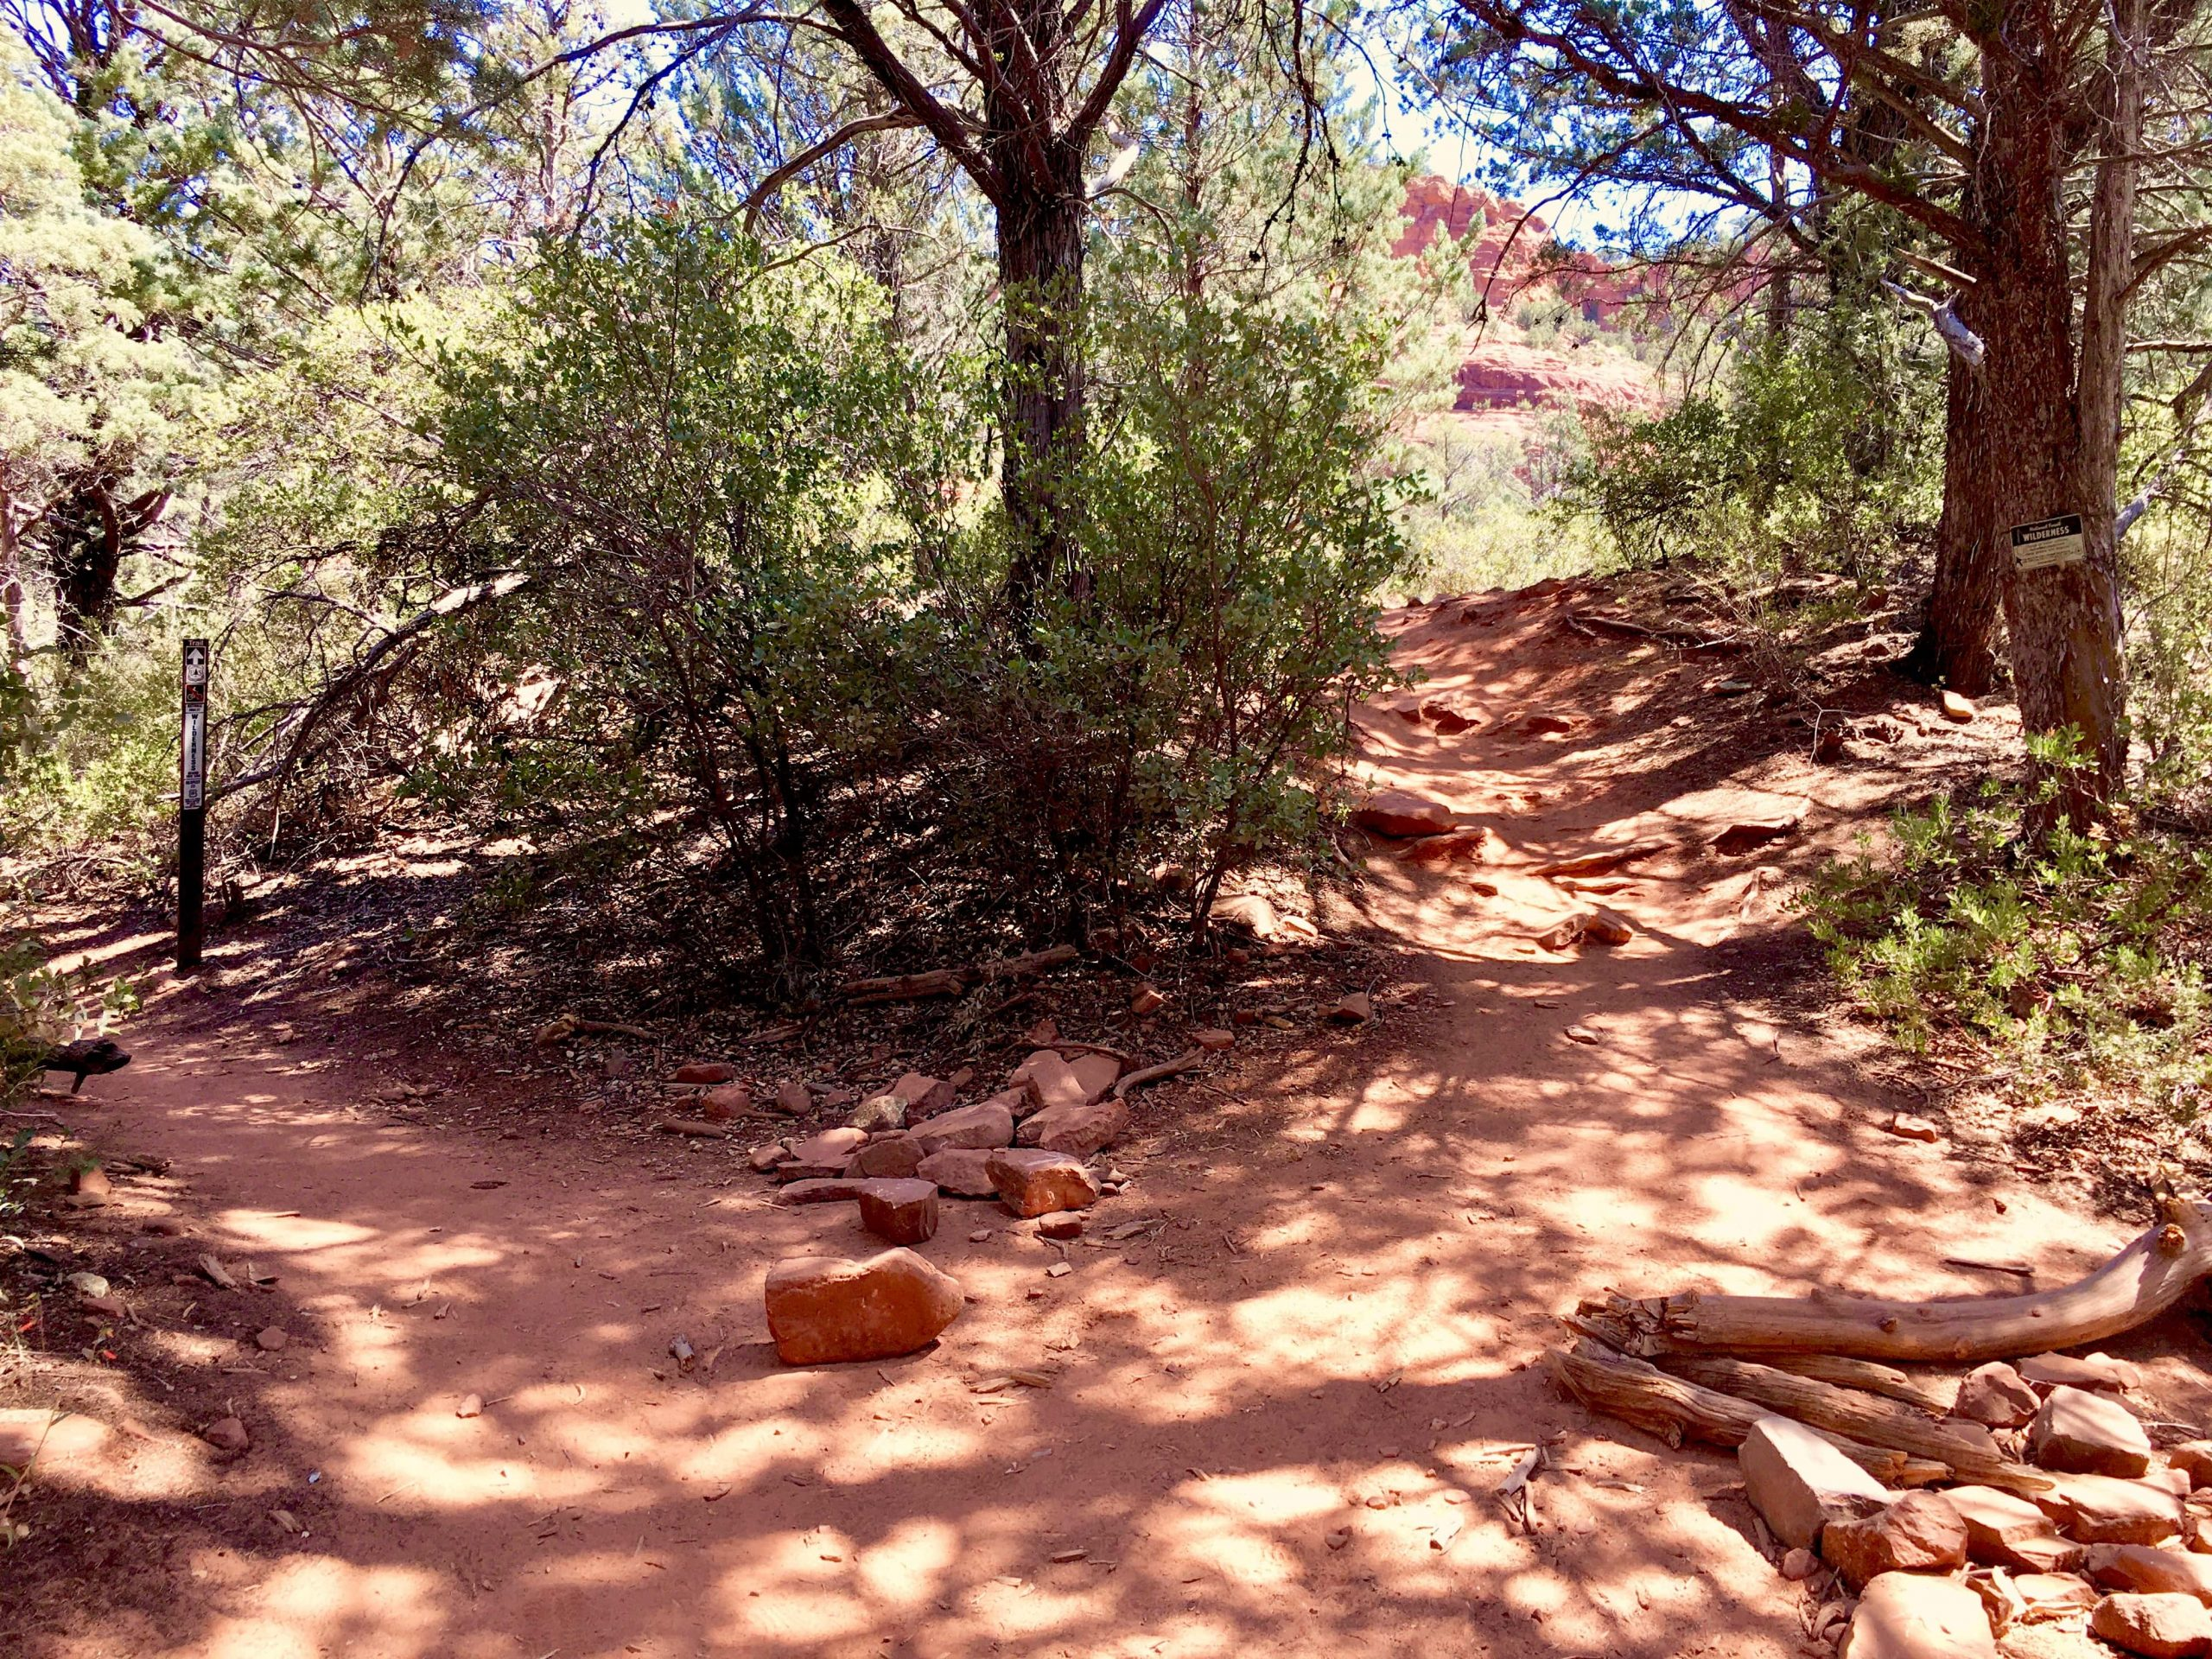 Turn Off on RIGHT from Soldier Pass Trail to Soldier Pass Cave in Sedona